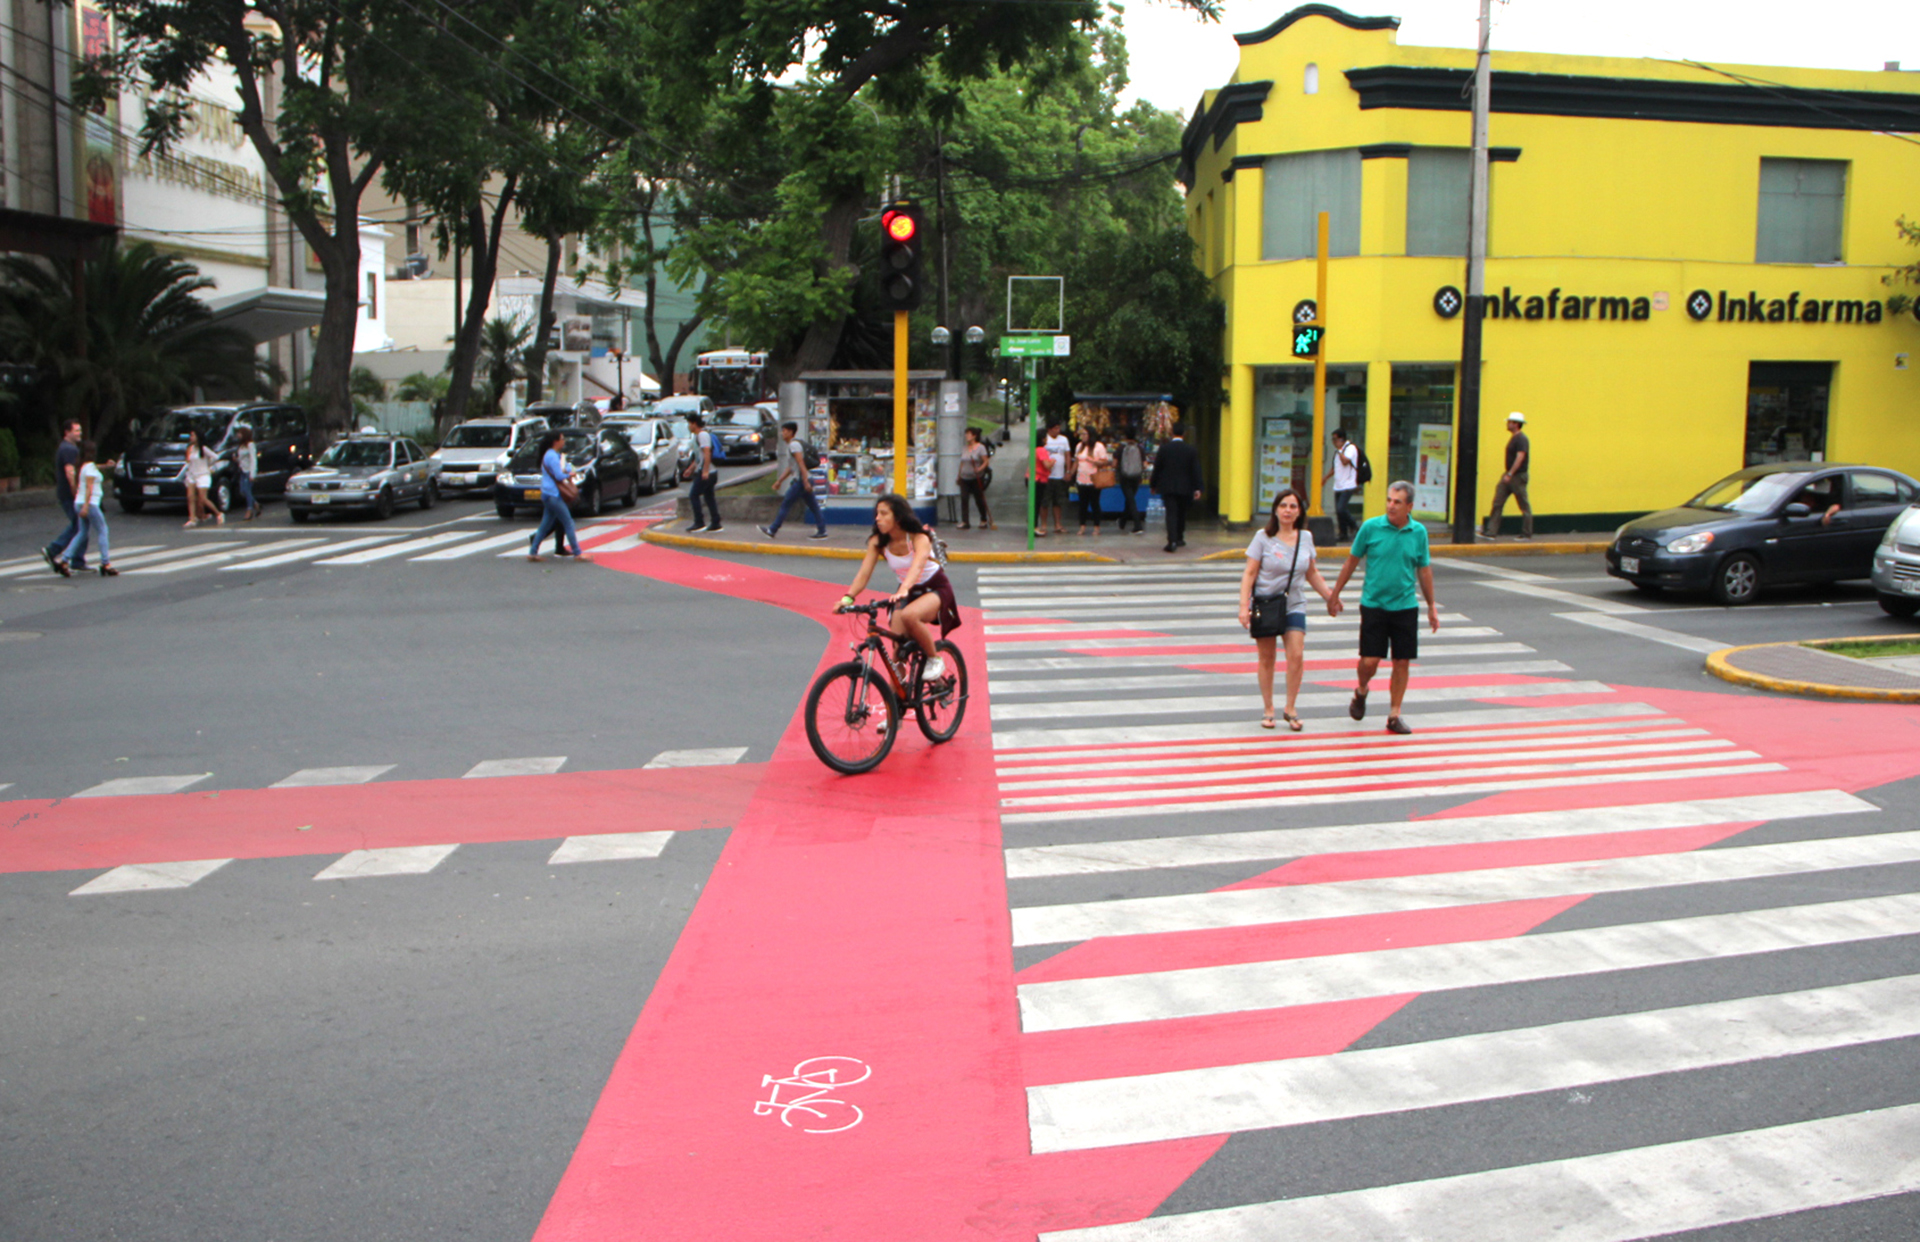 CYCLING INFRASTRUCTURE AND URBAN DESIGN